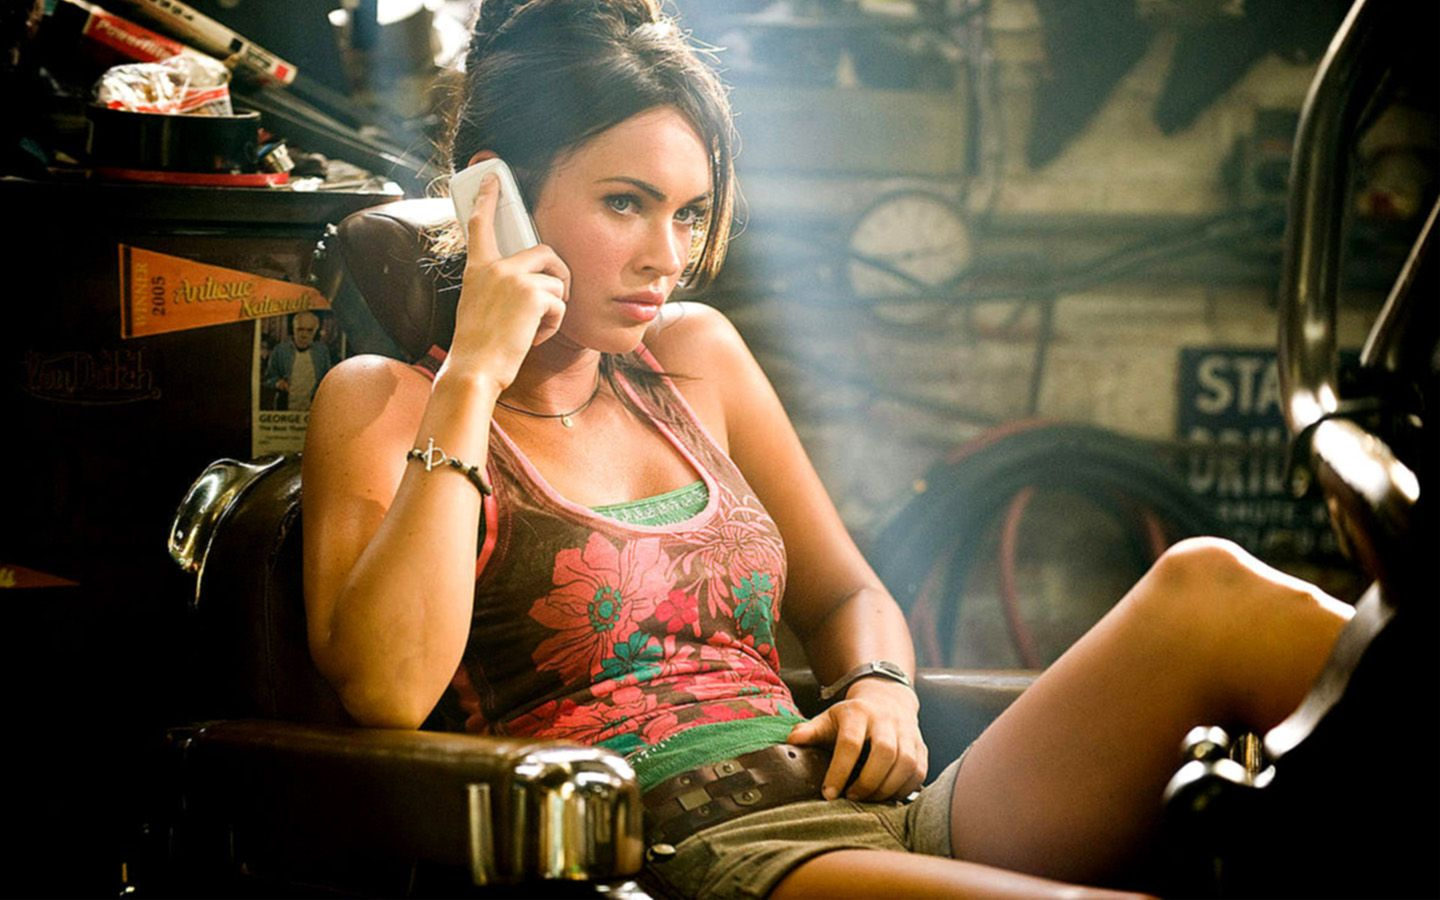 Resim Bul Megan Fox Megan Fox Hd Wallpapers 1080P 1440x900